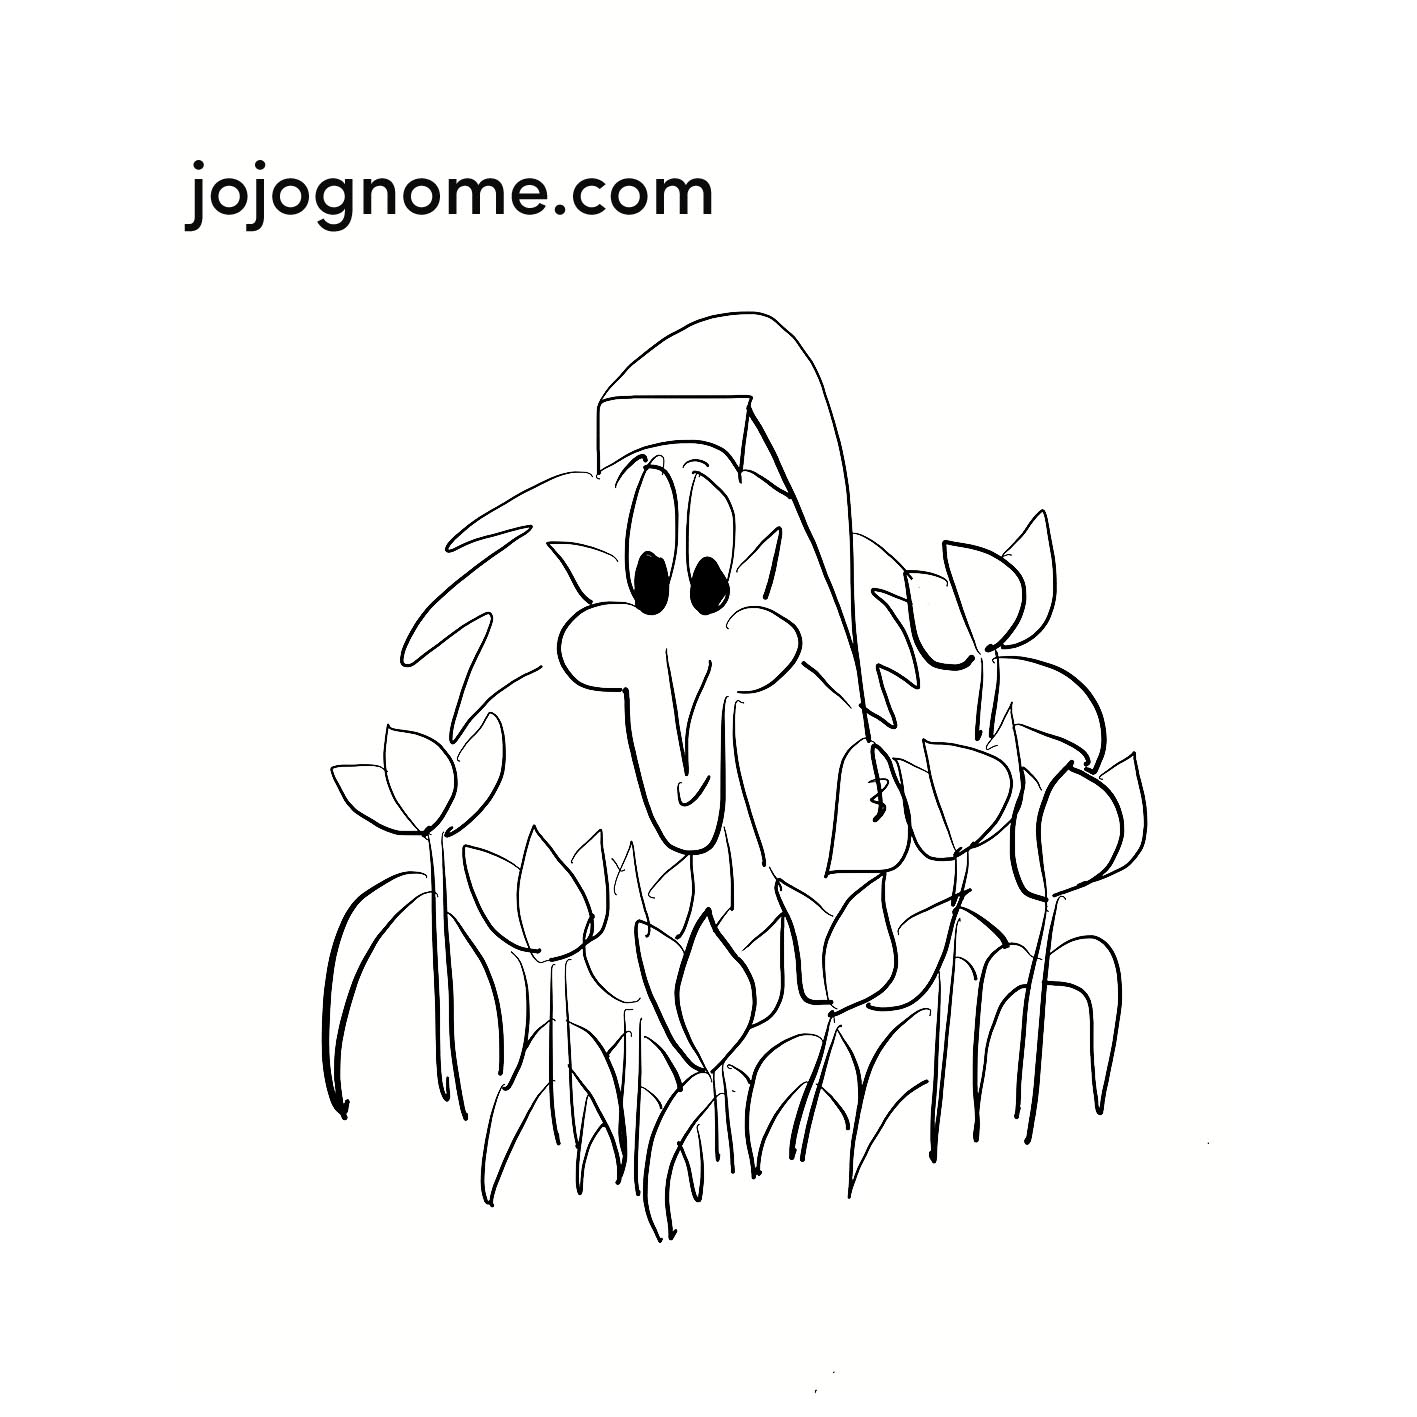 JoJo Gnome Spring Colouring In Pages | JoJoGnome